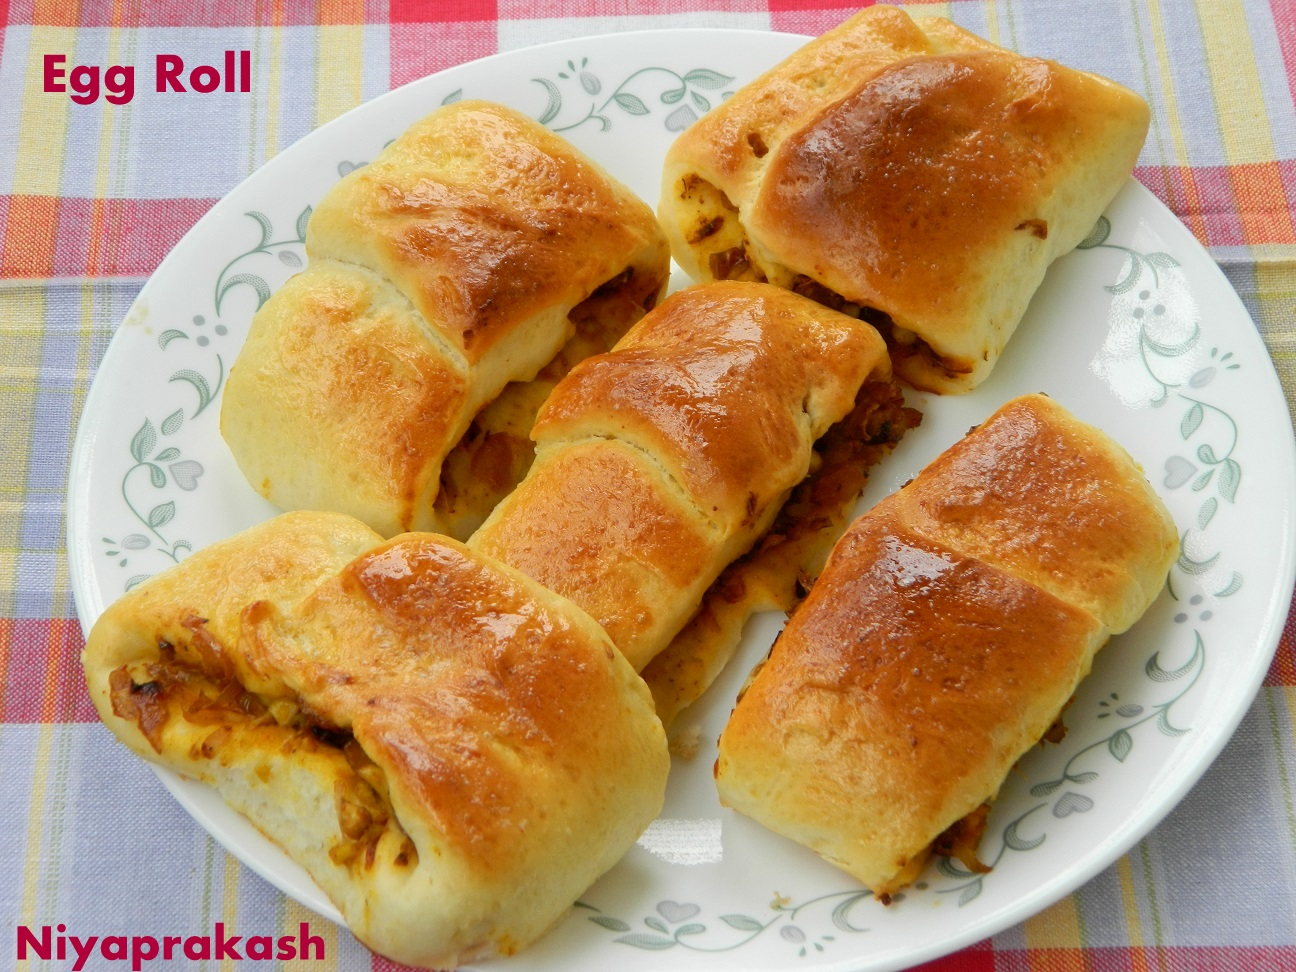 ... today i m making egg roll or rolled egg last year i made egg roll and